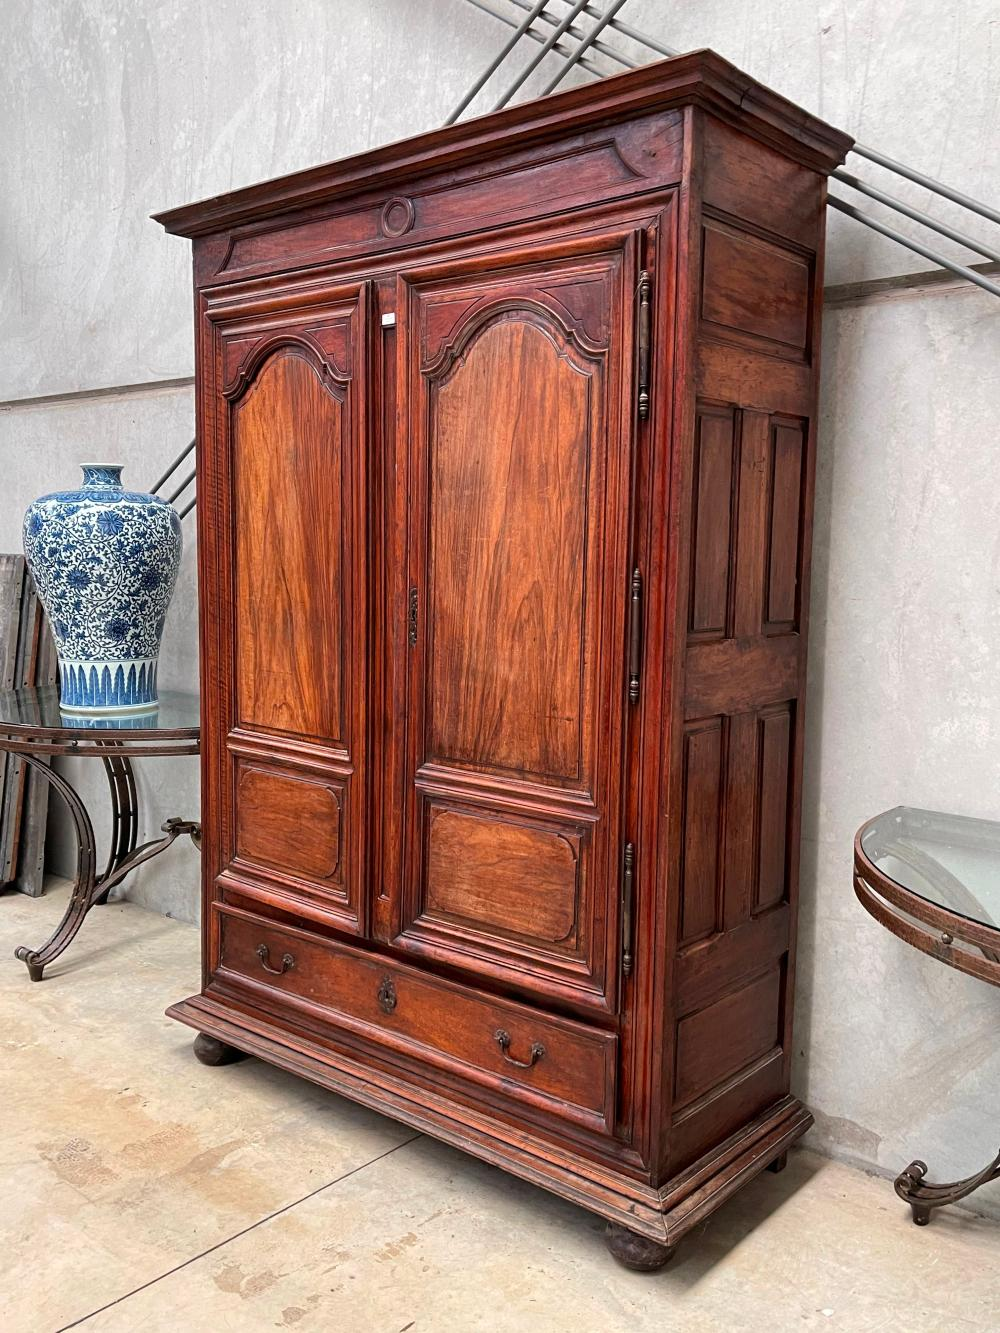 Antique French walnut late 18th / early 19th century two door armoire, with single long drawer below, all on bun feet, approx 233cm H x 168cm W x 63cm D